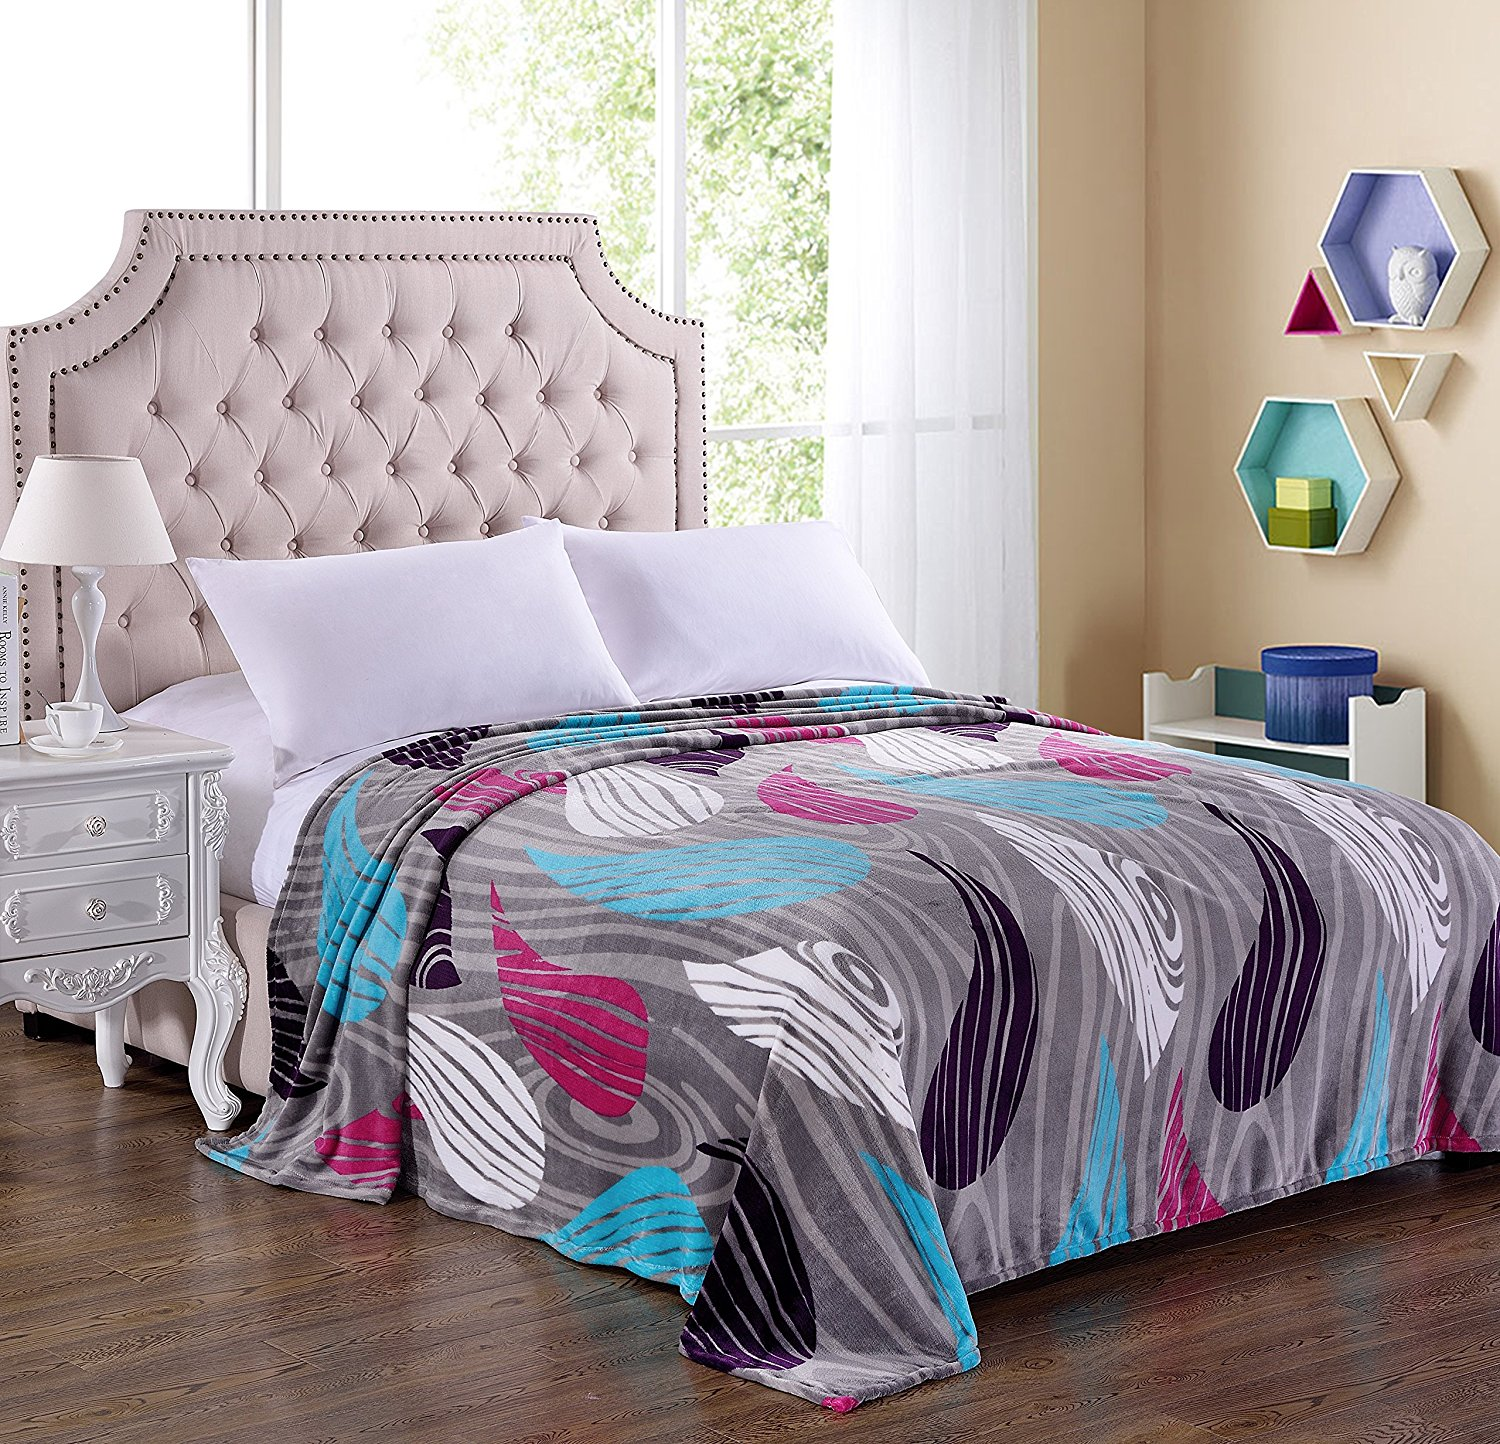 Picasso Collection Colorful Paisley Micro Plush Blanket, Twin